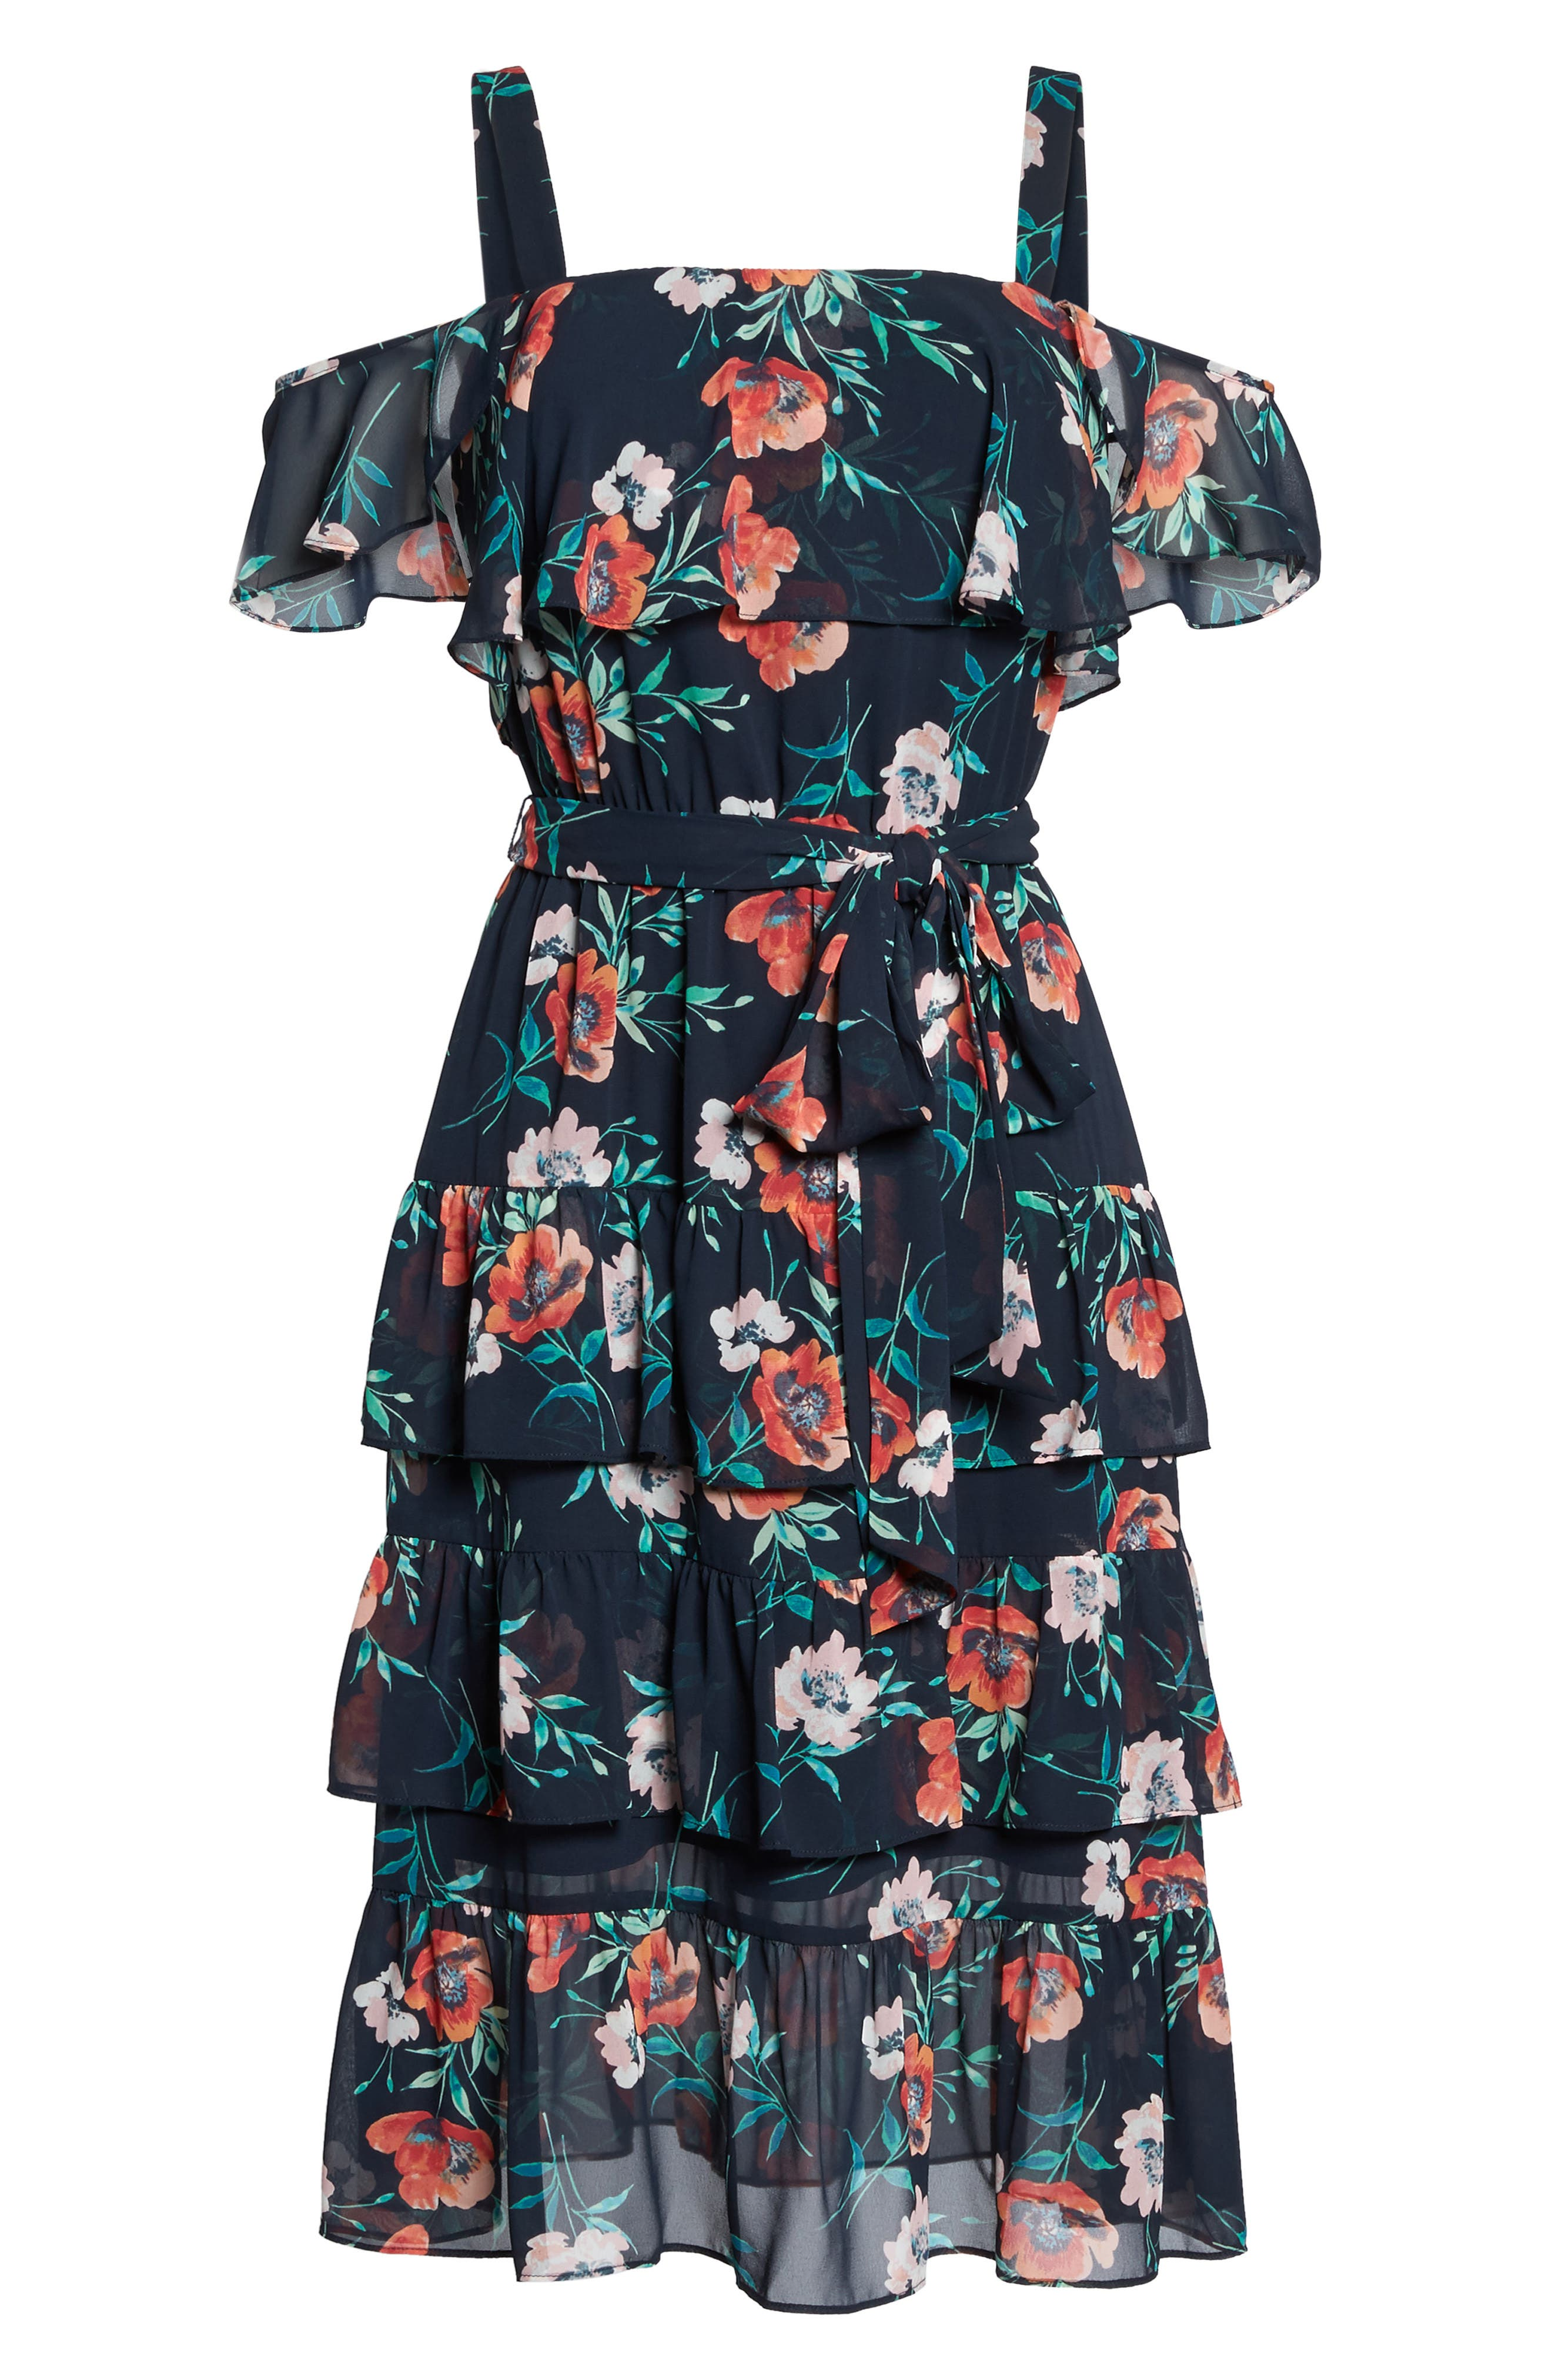 Floral Ruffle Dress,                             Alternate thumbnail 6, color,                             410